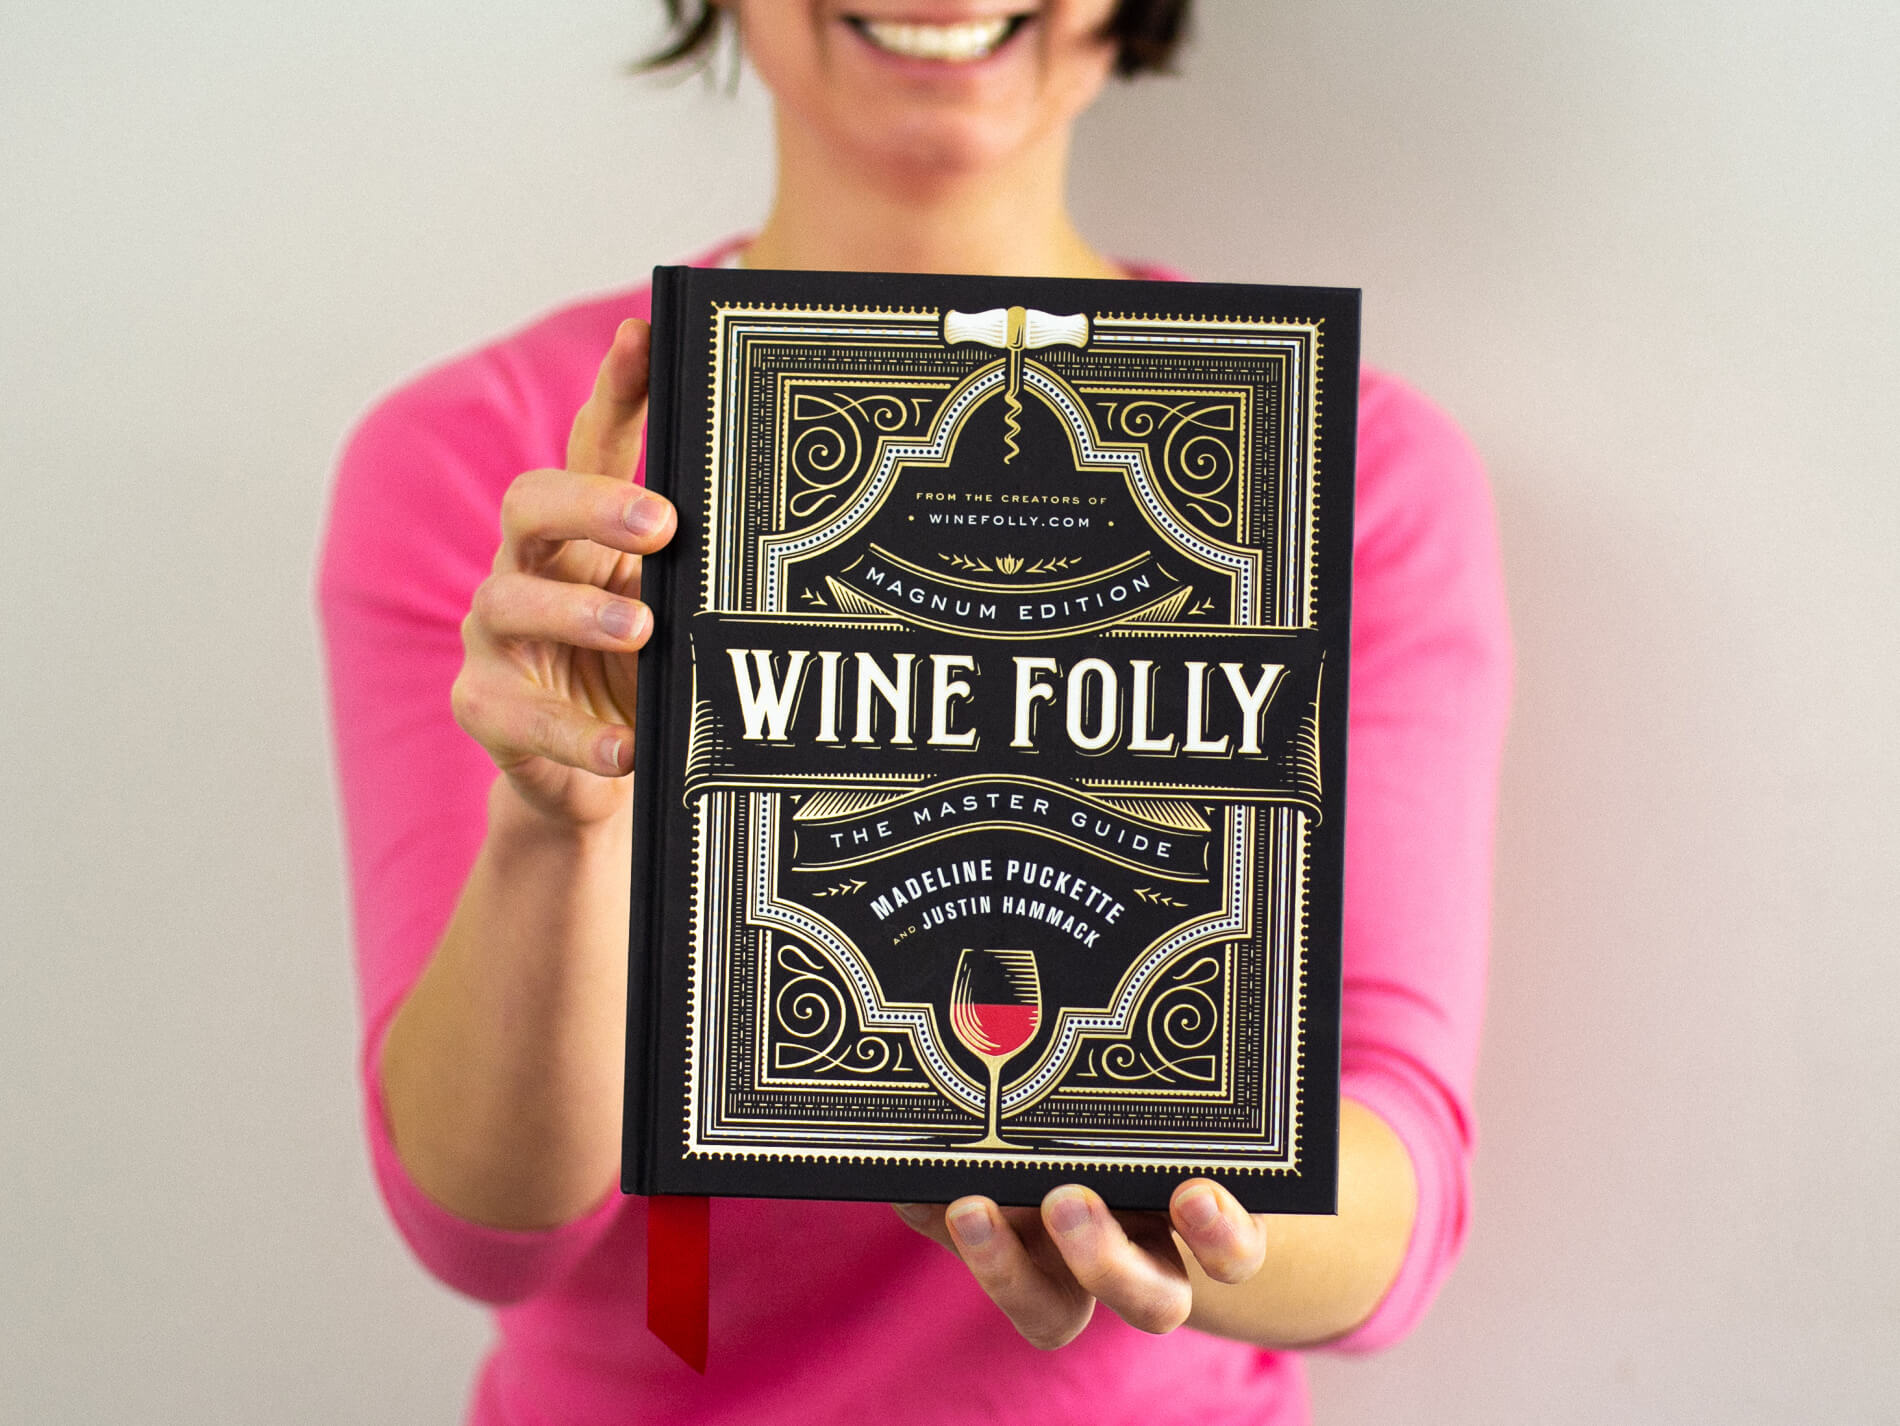 Wine Folly Magnum Book - James Beard Winner